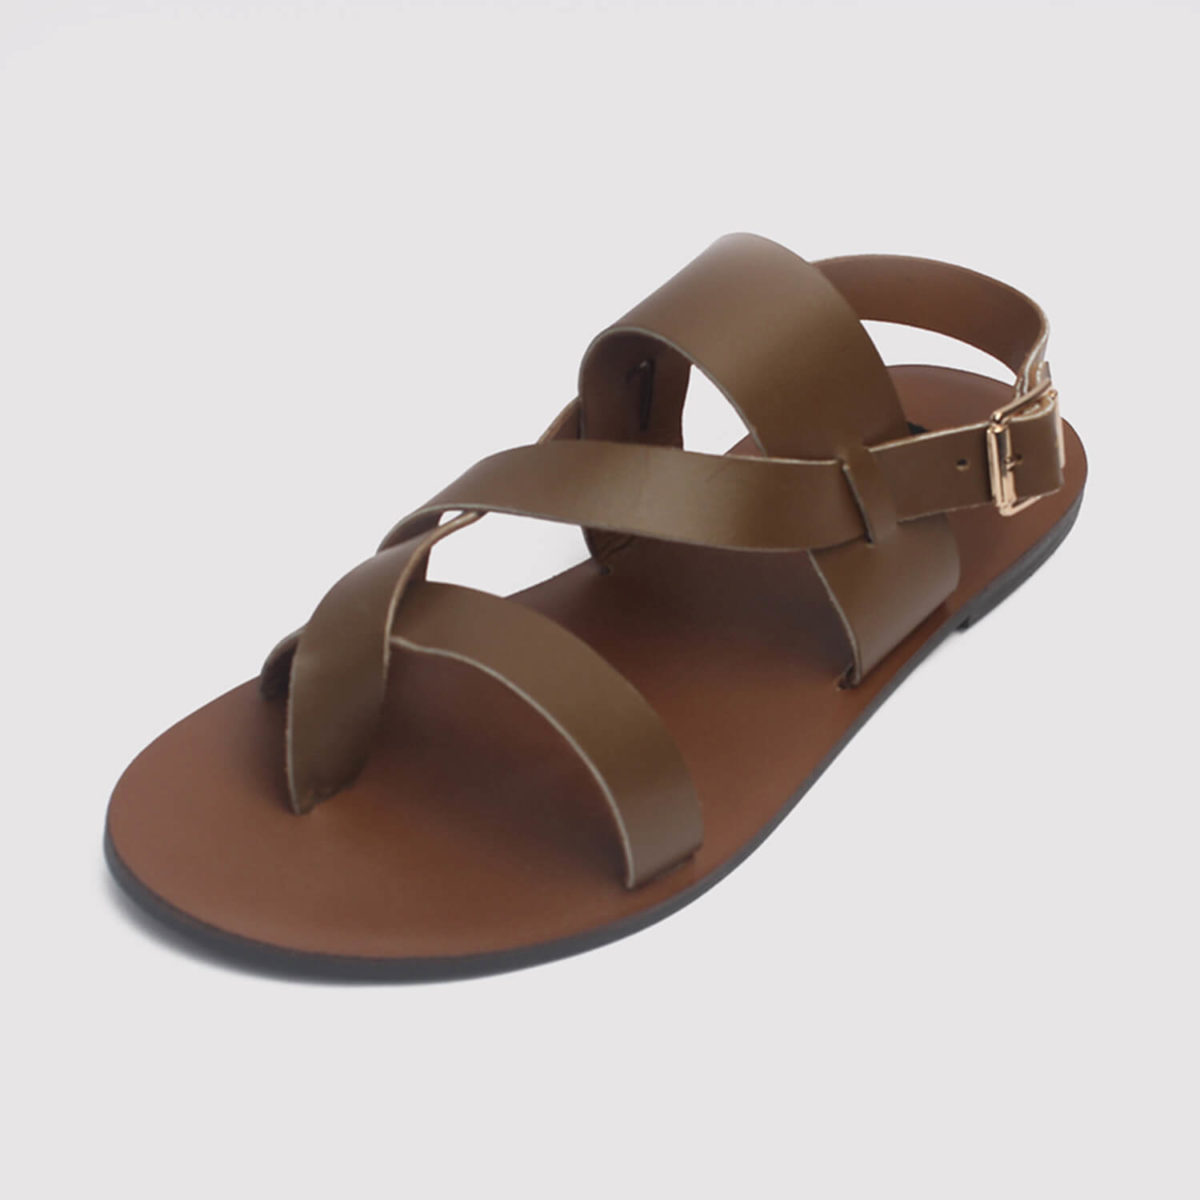 Kuti Sandals Coffee Brown Leather ZMD016 - Zorkle Shoes